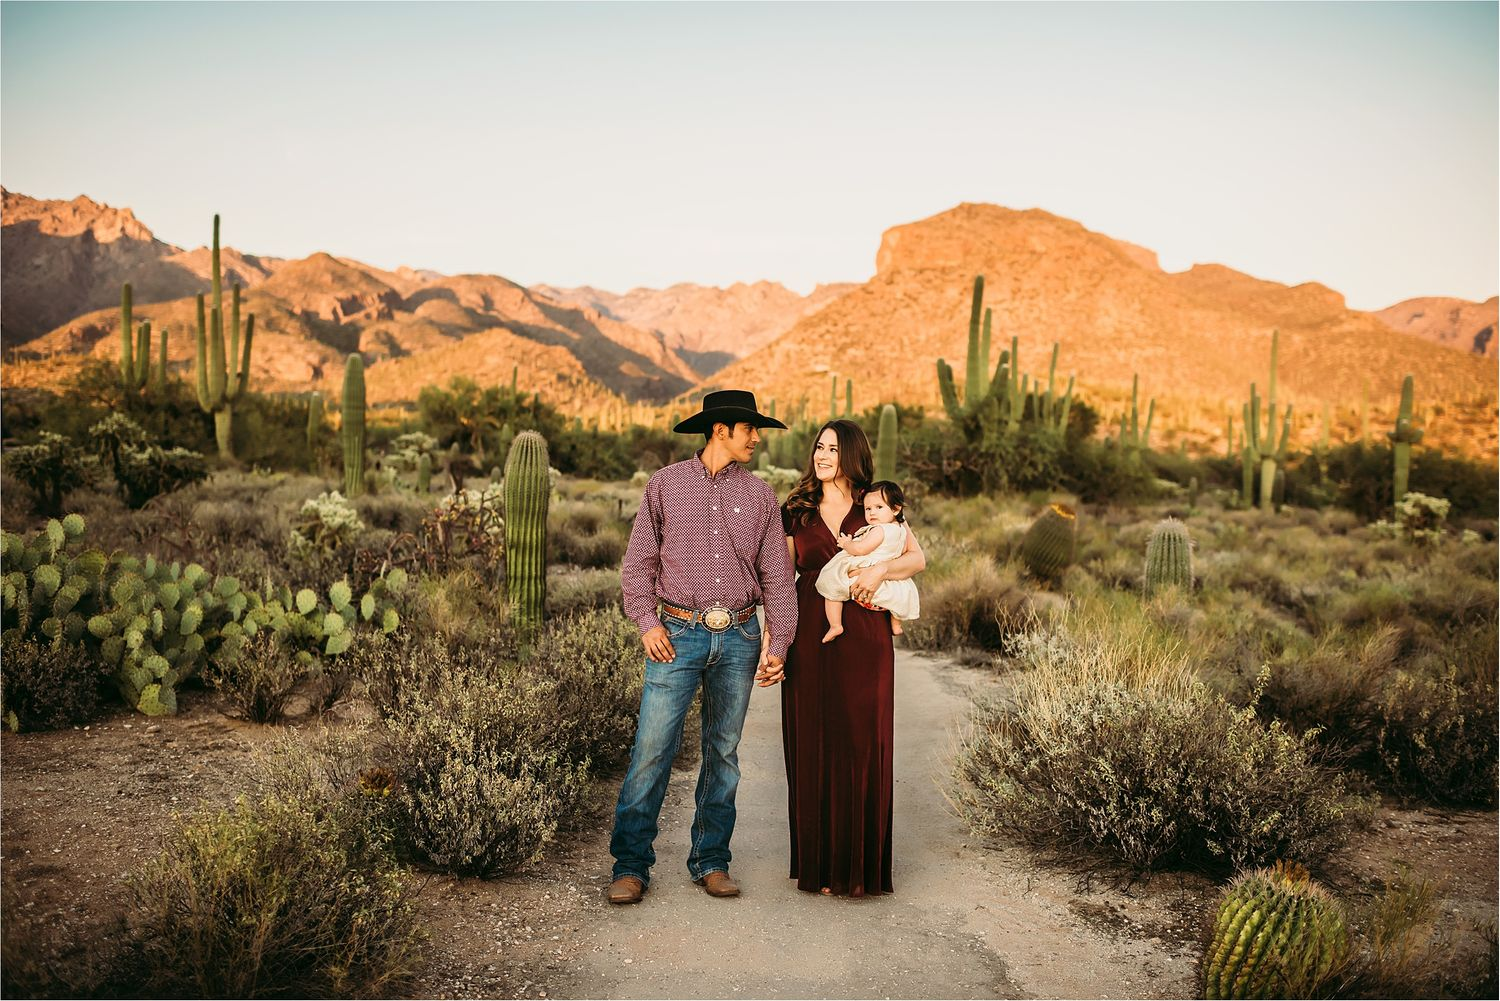 Family photo session in the desert with mountain views-Best Tucson Family Photographer-11